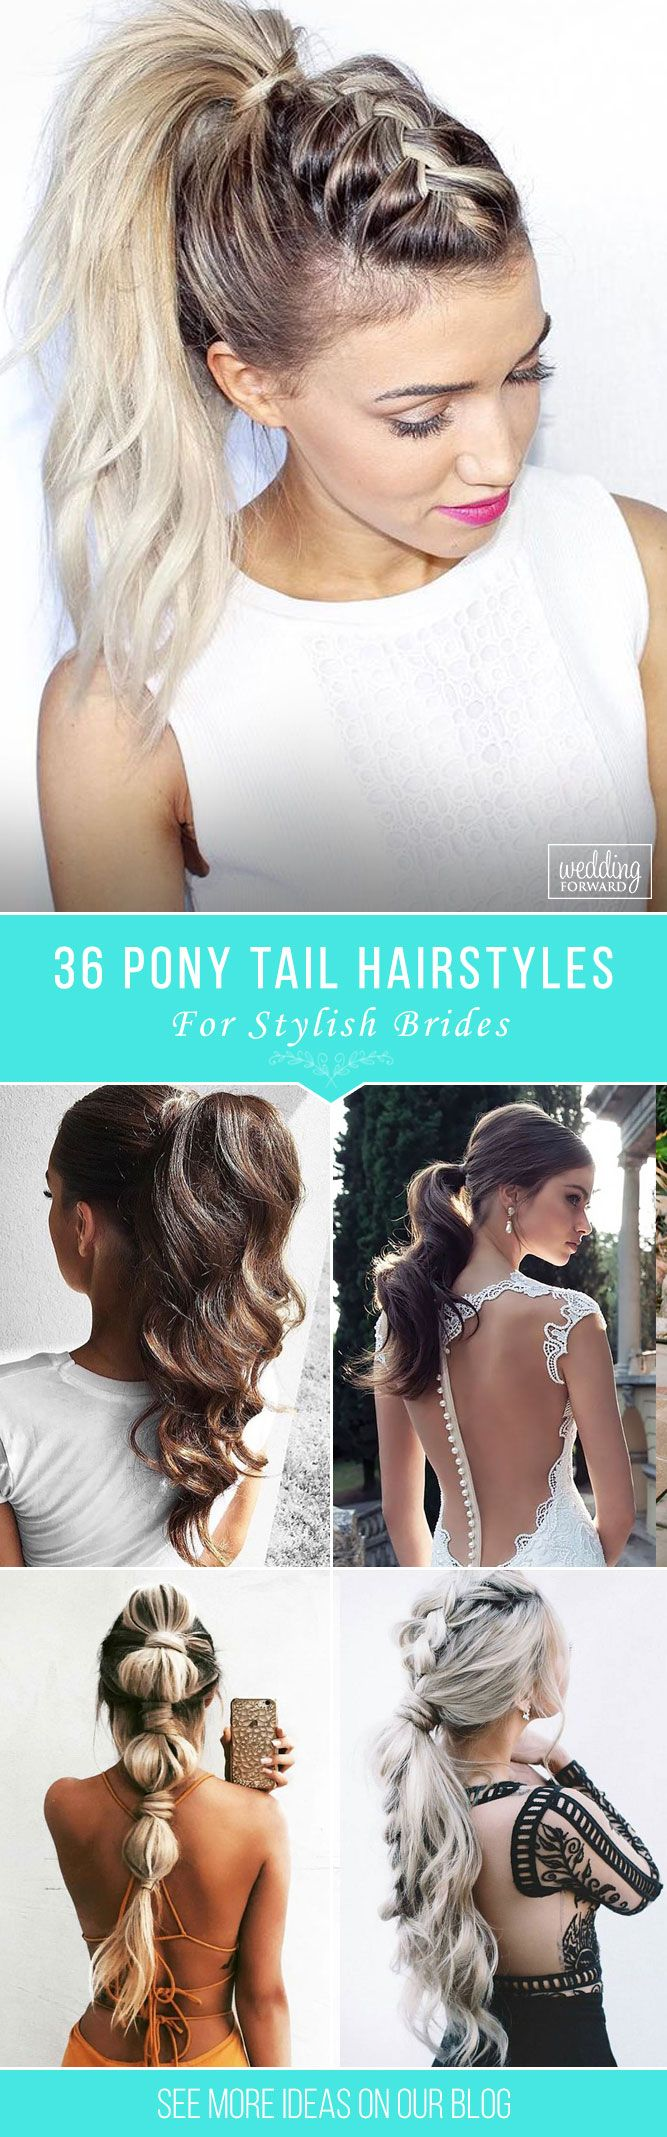 36 Party Perfect Pony Tail Hairstyles For Your Big Day ❤ Pony tail hairstyles ...